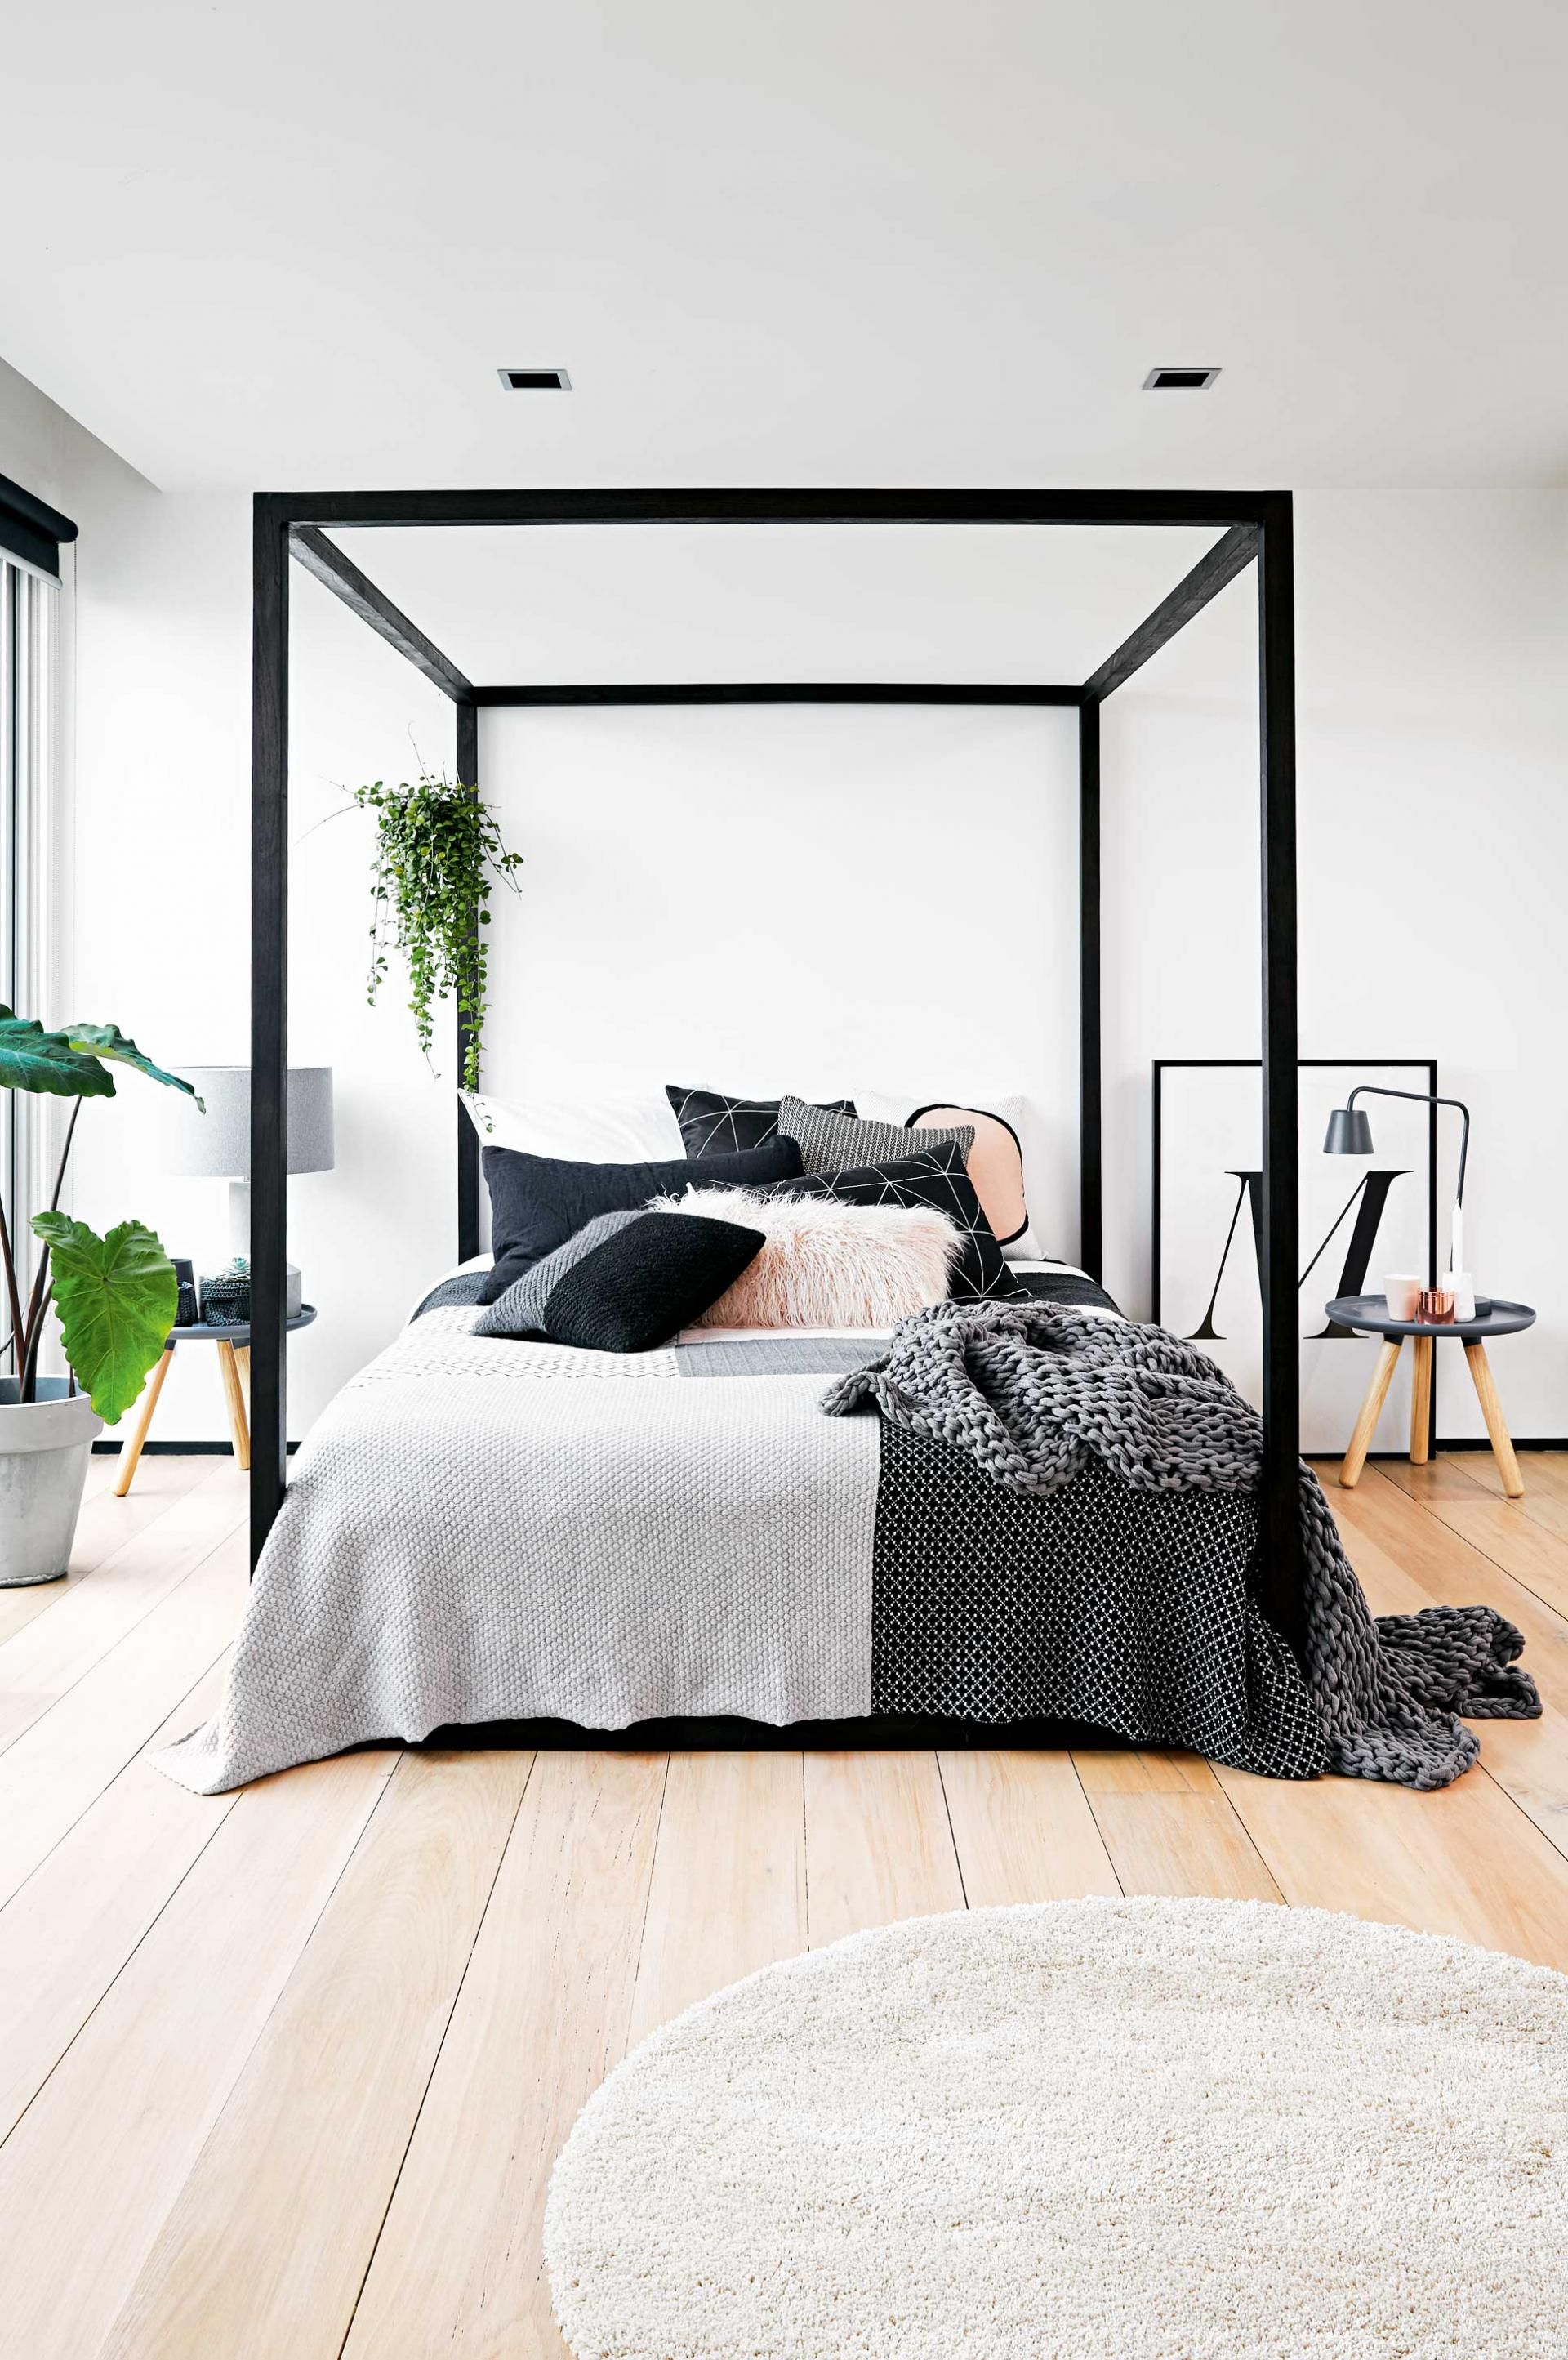 Black bedroom ideas inspiration for master bedroom designs google play september and app Modern chic master bedroom